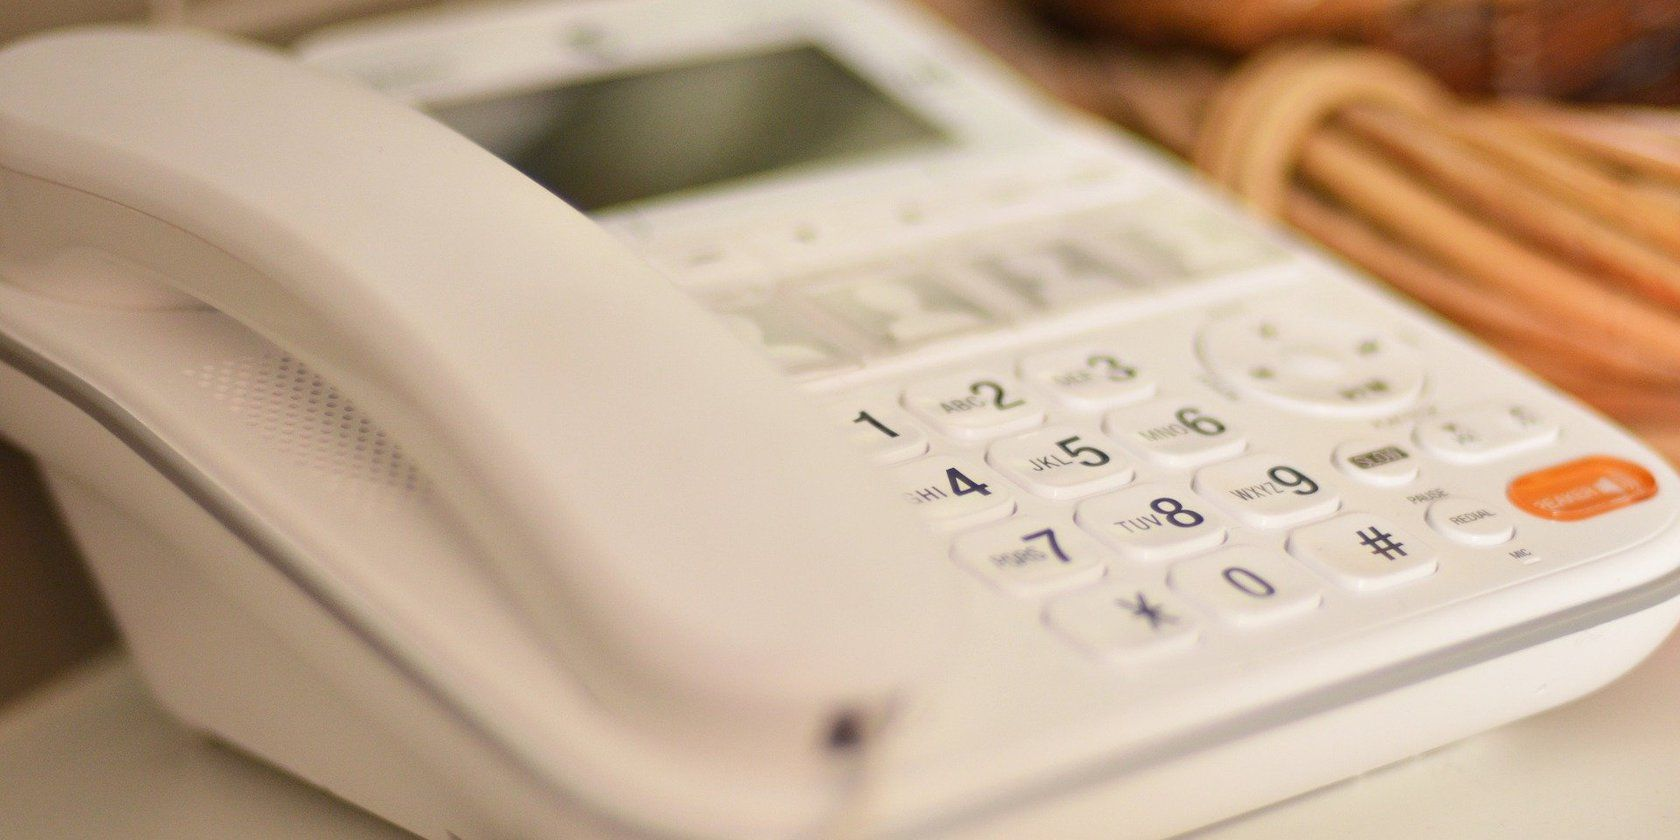 Nuisance Calls? Here's How to Block a Number on Landline Phones